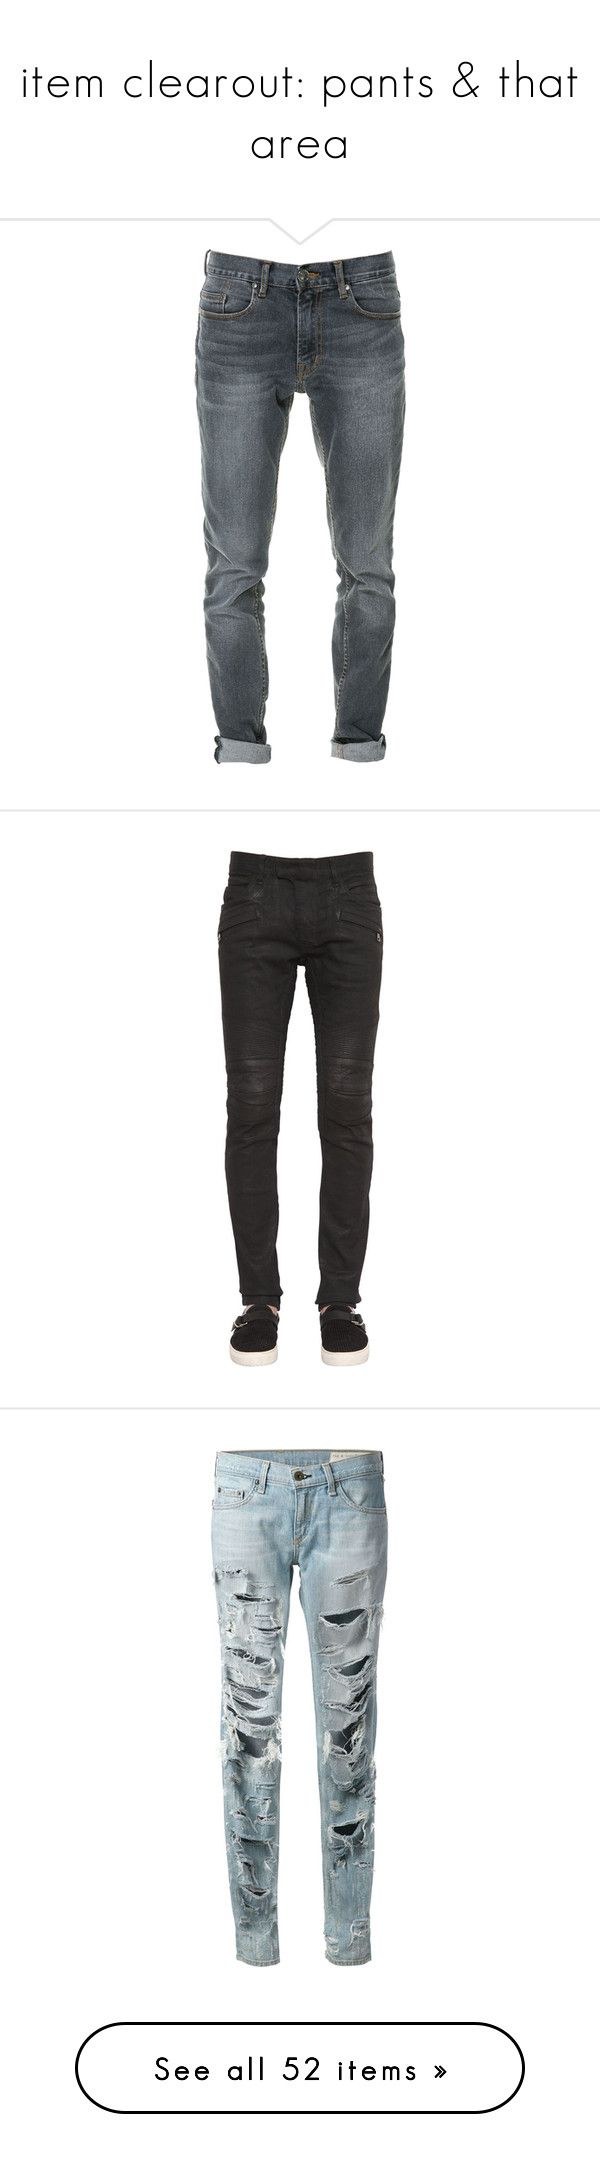 """""""item clearout: pants & that area"""" by likedeadroses ❤ liked on Polyvore featuring men's fashion, men's clothing, men's jeans, grey, mens gray jeans, zara mens jeans, mens grey jeans, black, mens jeans and balmain men's jeans"""